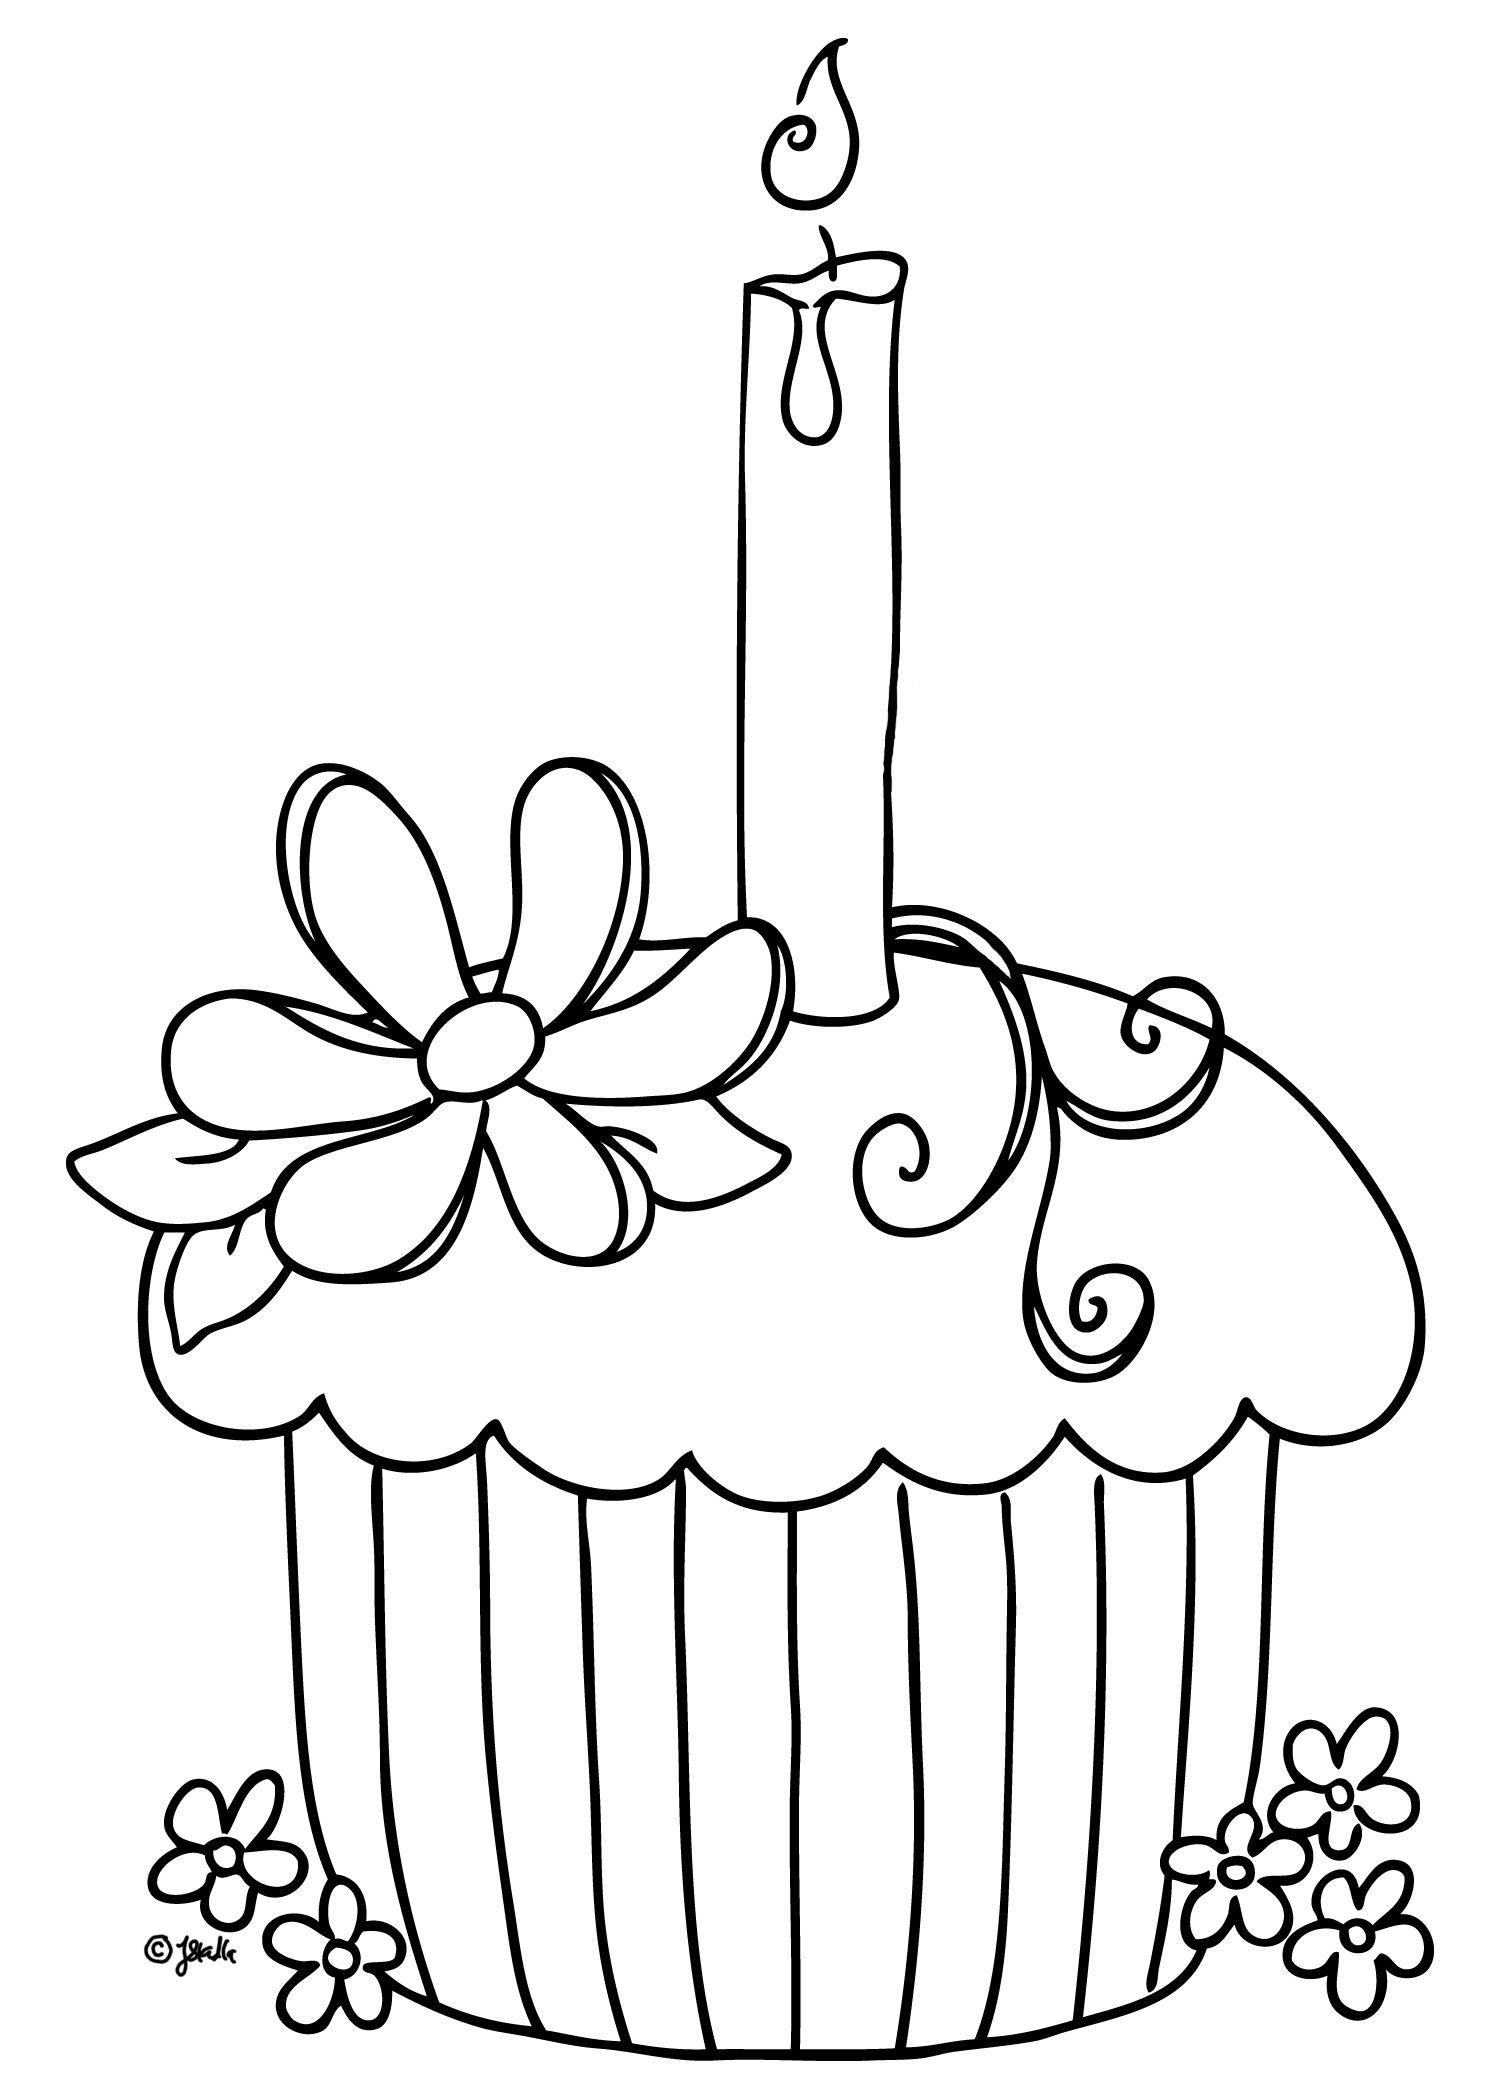 Free Printable Cupcake Coloring Pages For Kids Cupcake Coloring Pages Coloring Pages Digital Stamps